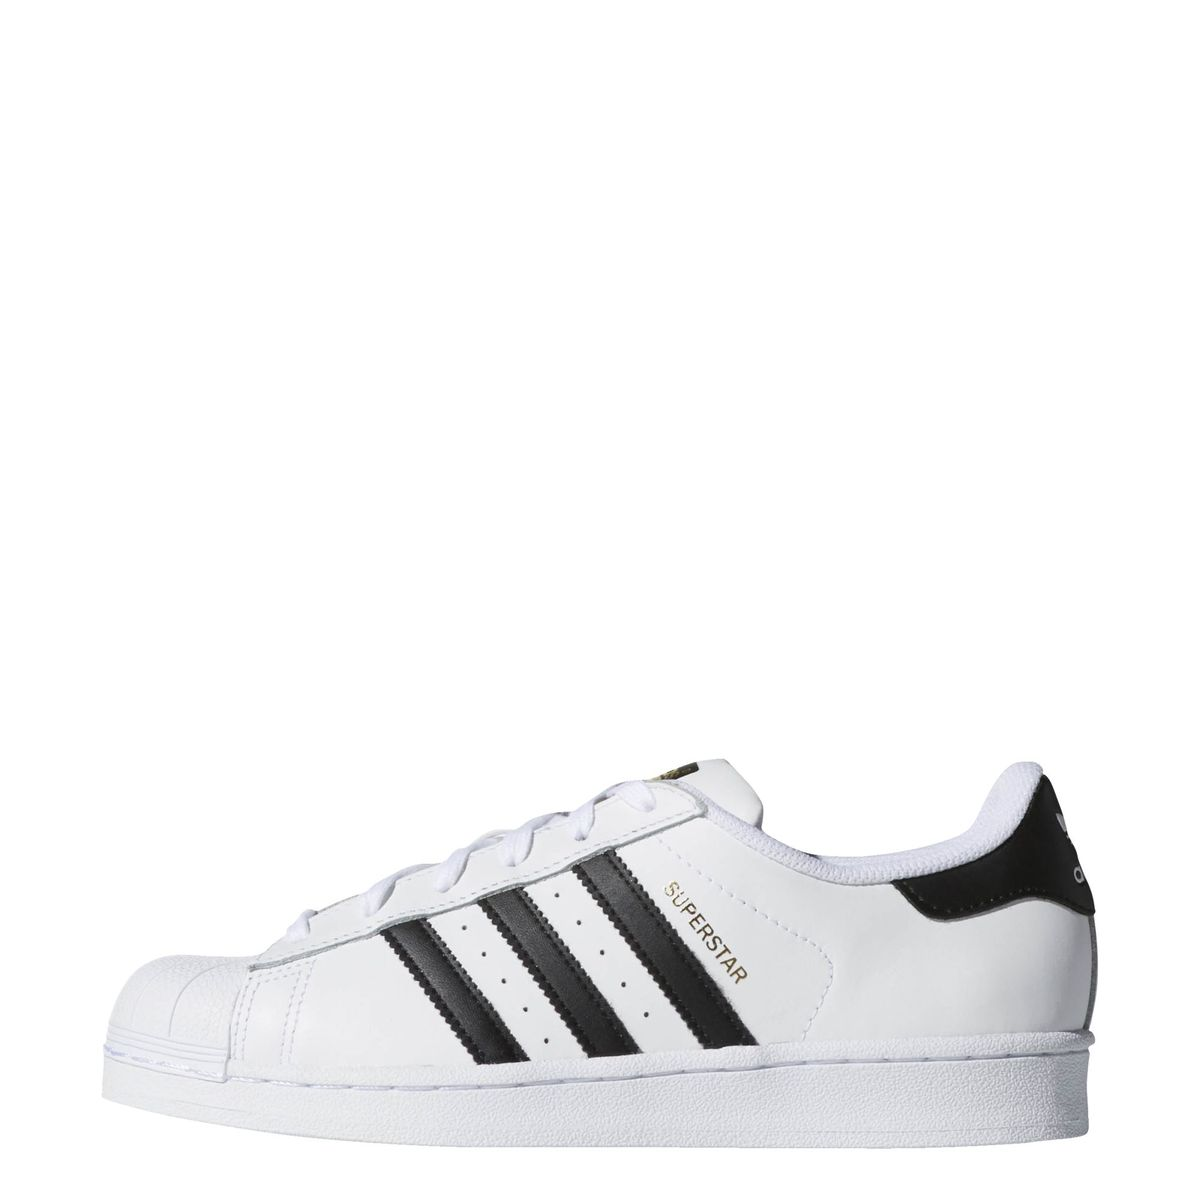 Chaussure Superstar - Taille : 39 1/3;37 1/3 | Chaussure ...